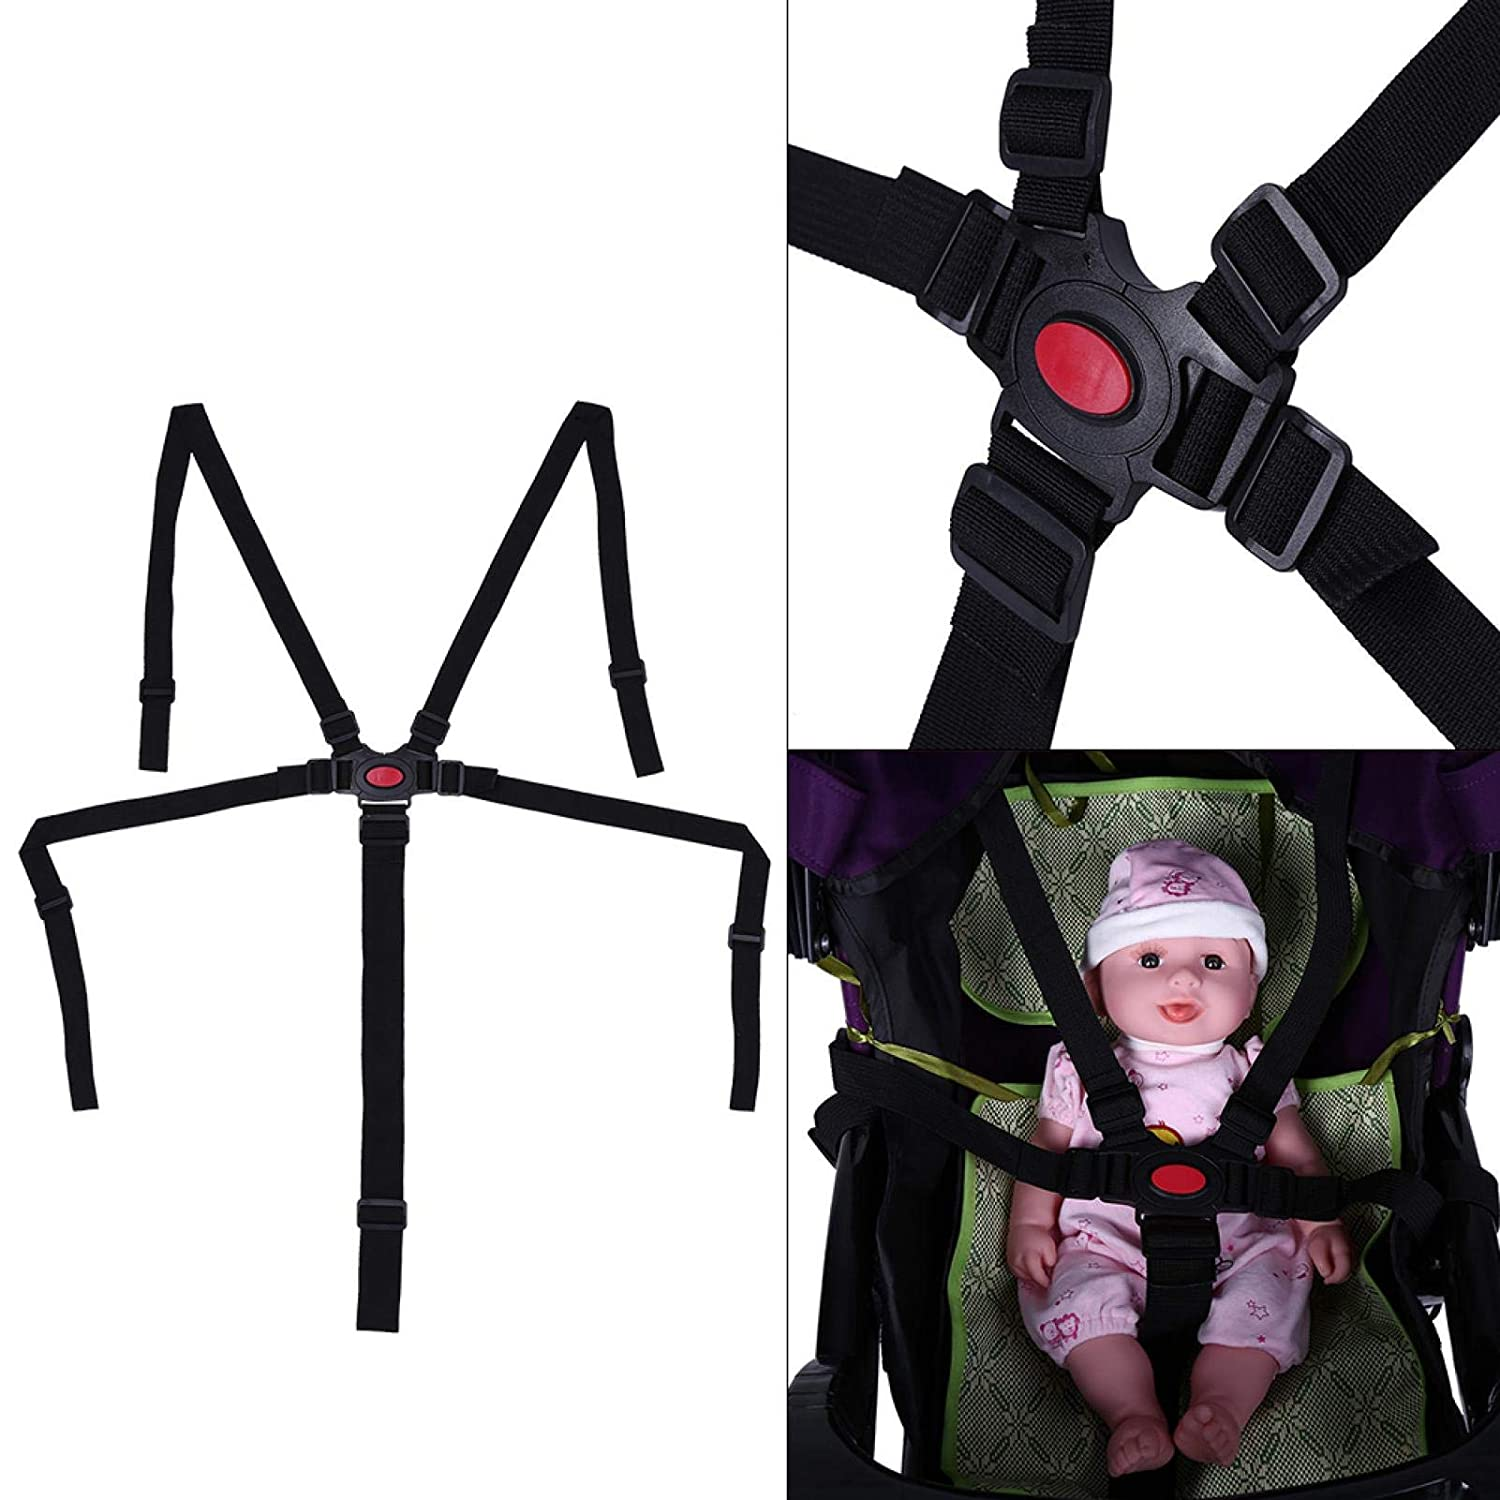 Universal Adjustable Baby Safety Strap,Baby Stroller Safety Strap,5 Point Safety Harness,for Baby Highchairs,Baby Stroller,Pushchair,Car Baby Seat,Baby Dining Chair